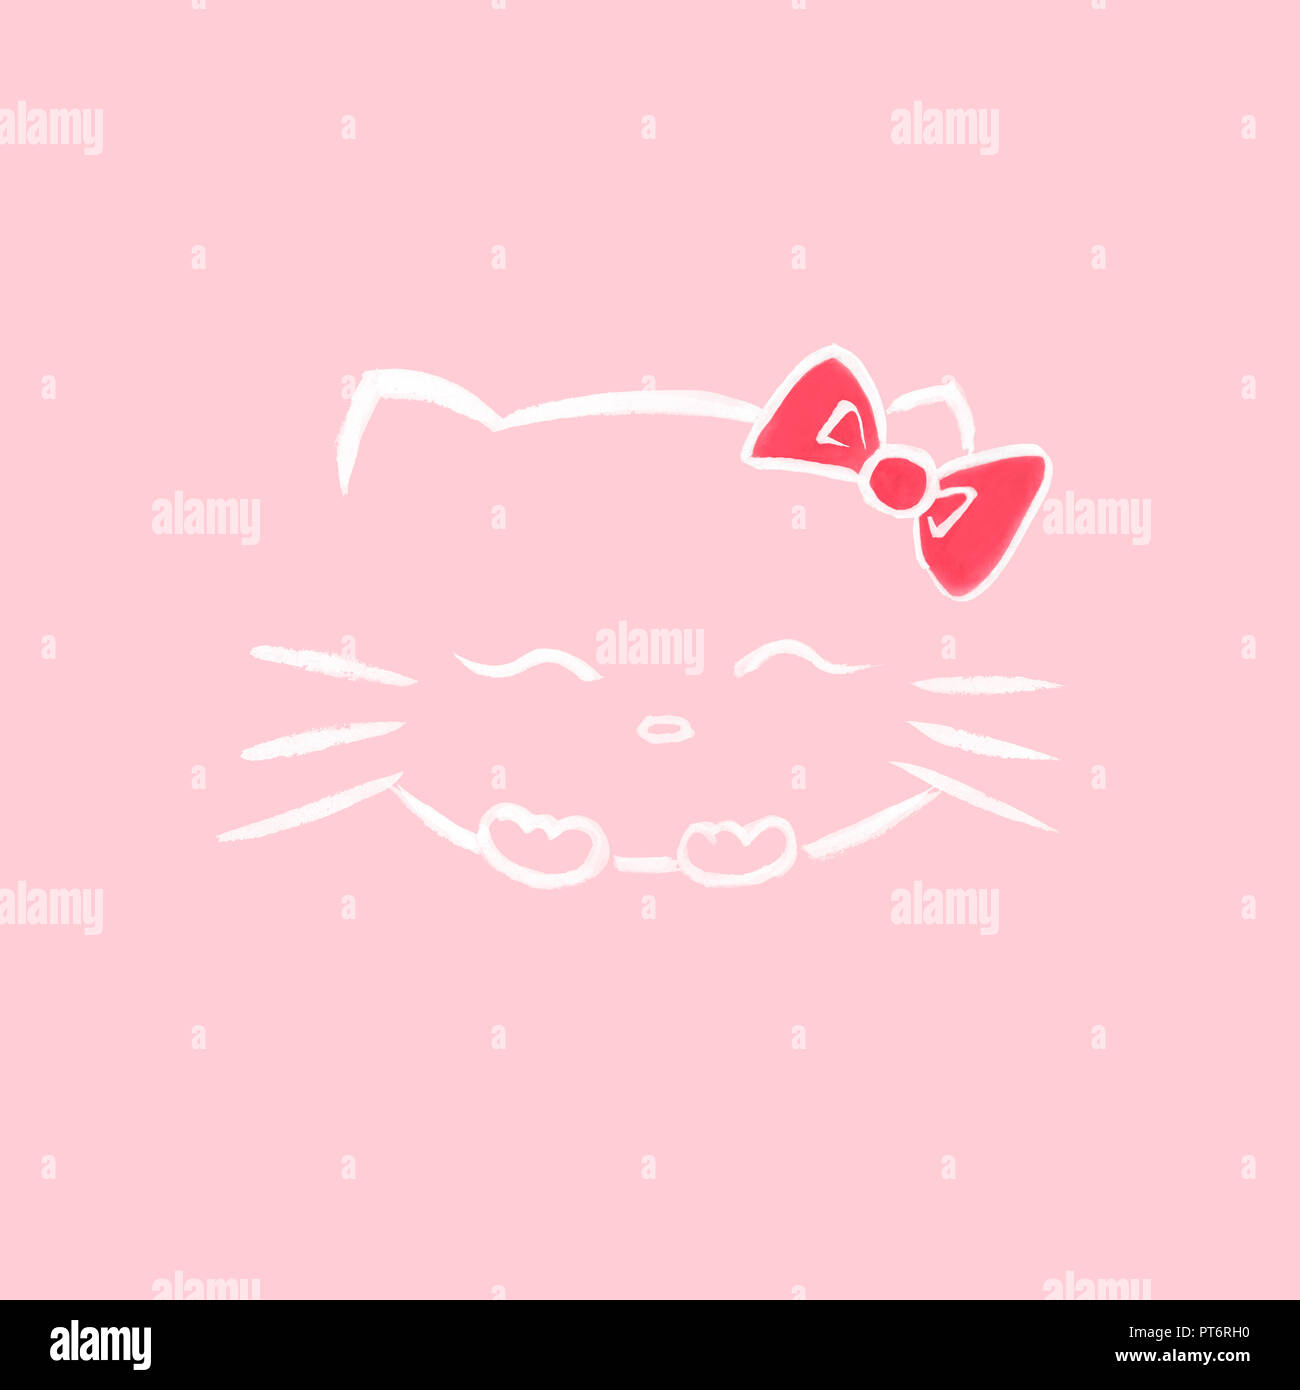 Cute smiling Hello kitty with a bow, Japanese kawaii cartoon cat character inspired sumi-e illustration white on soft baby pink background. - Stock Image